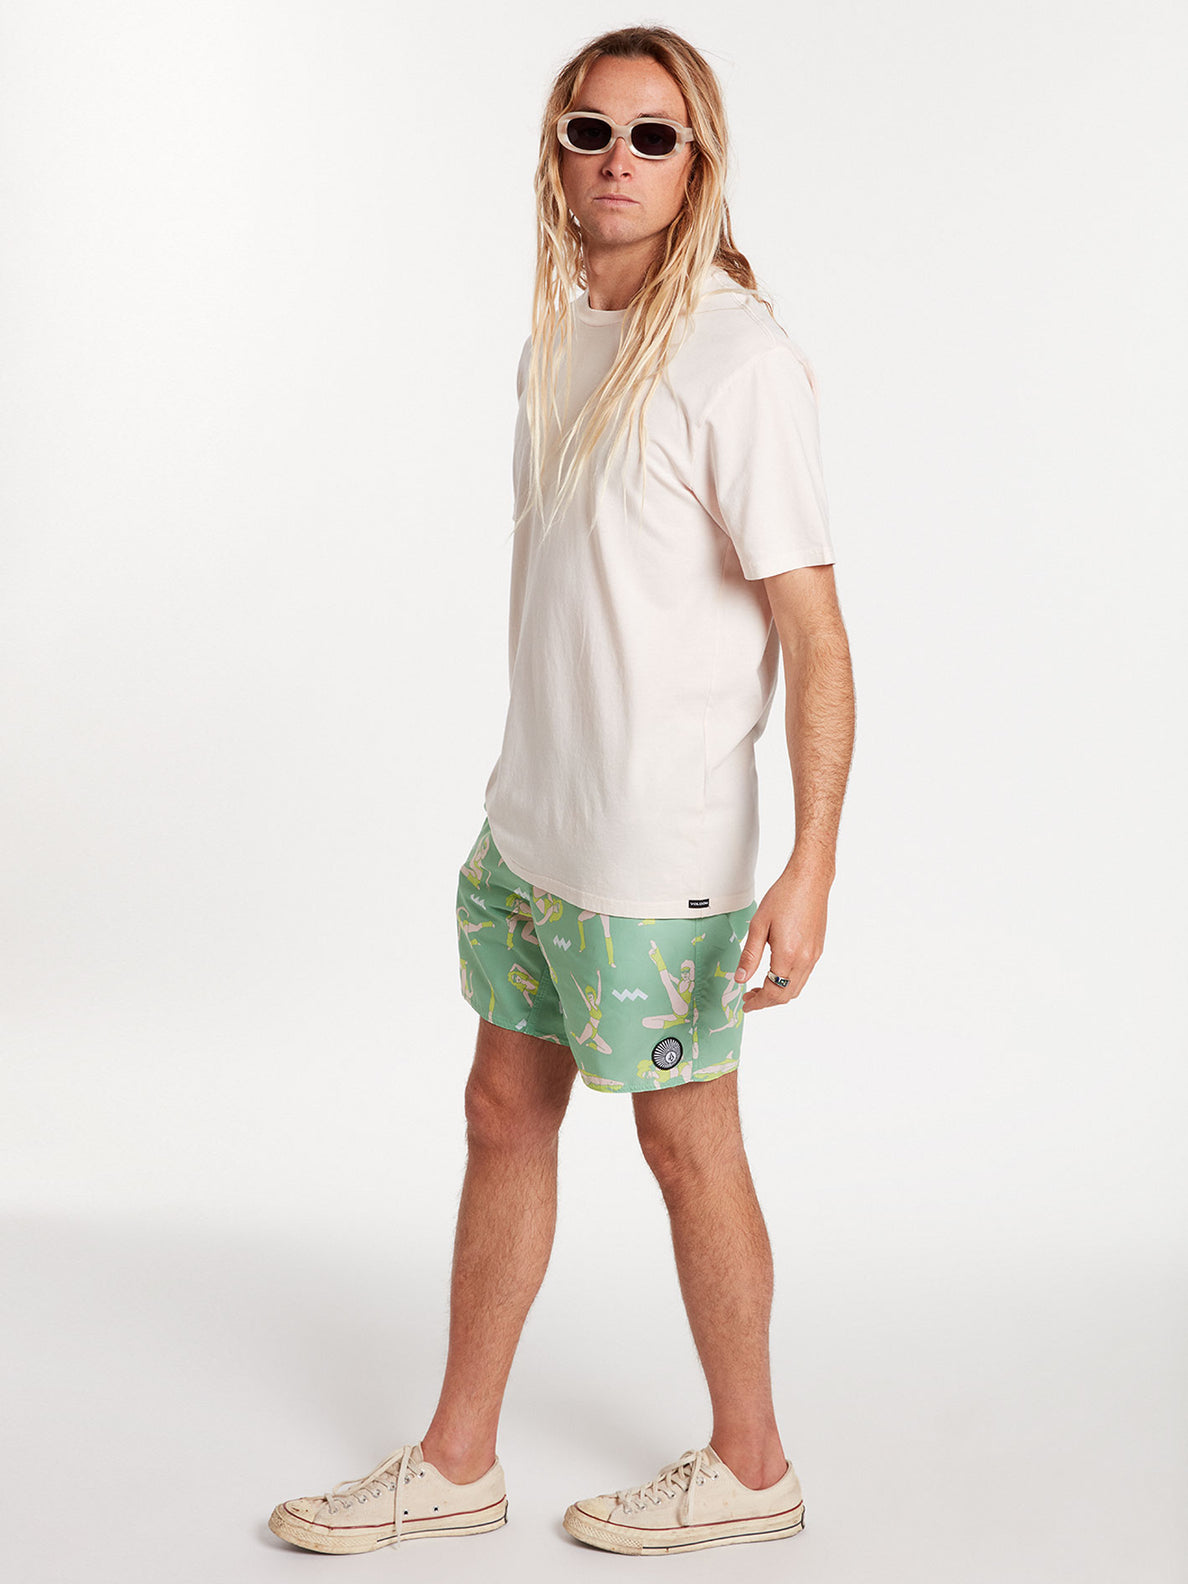 Sink Or Swim Trunks - Jade (A2522000_JDE) [24]